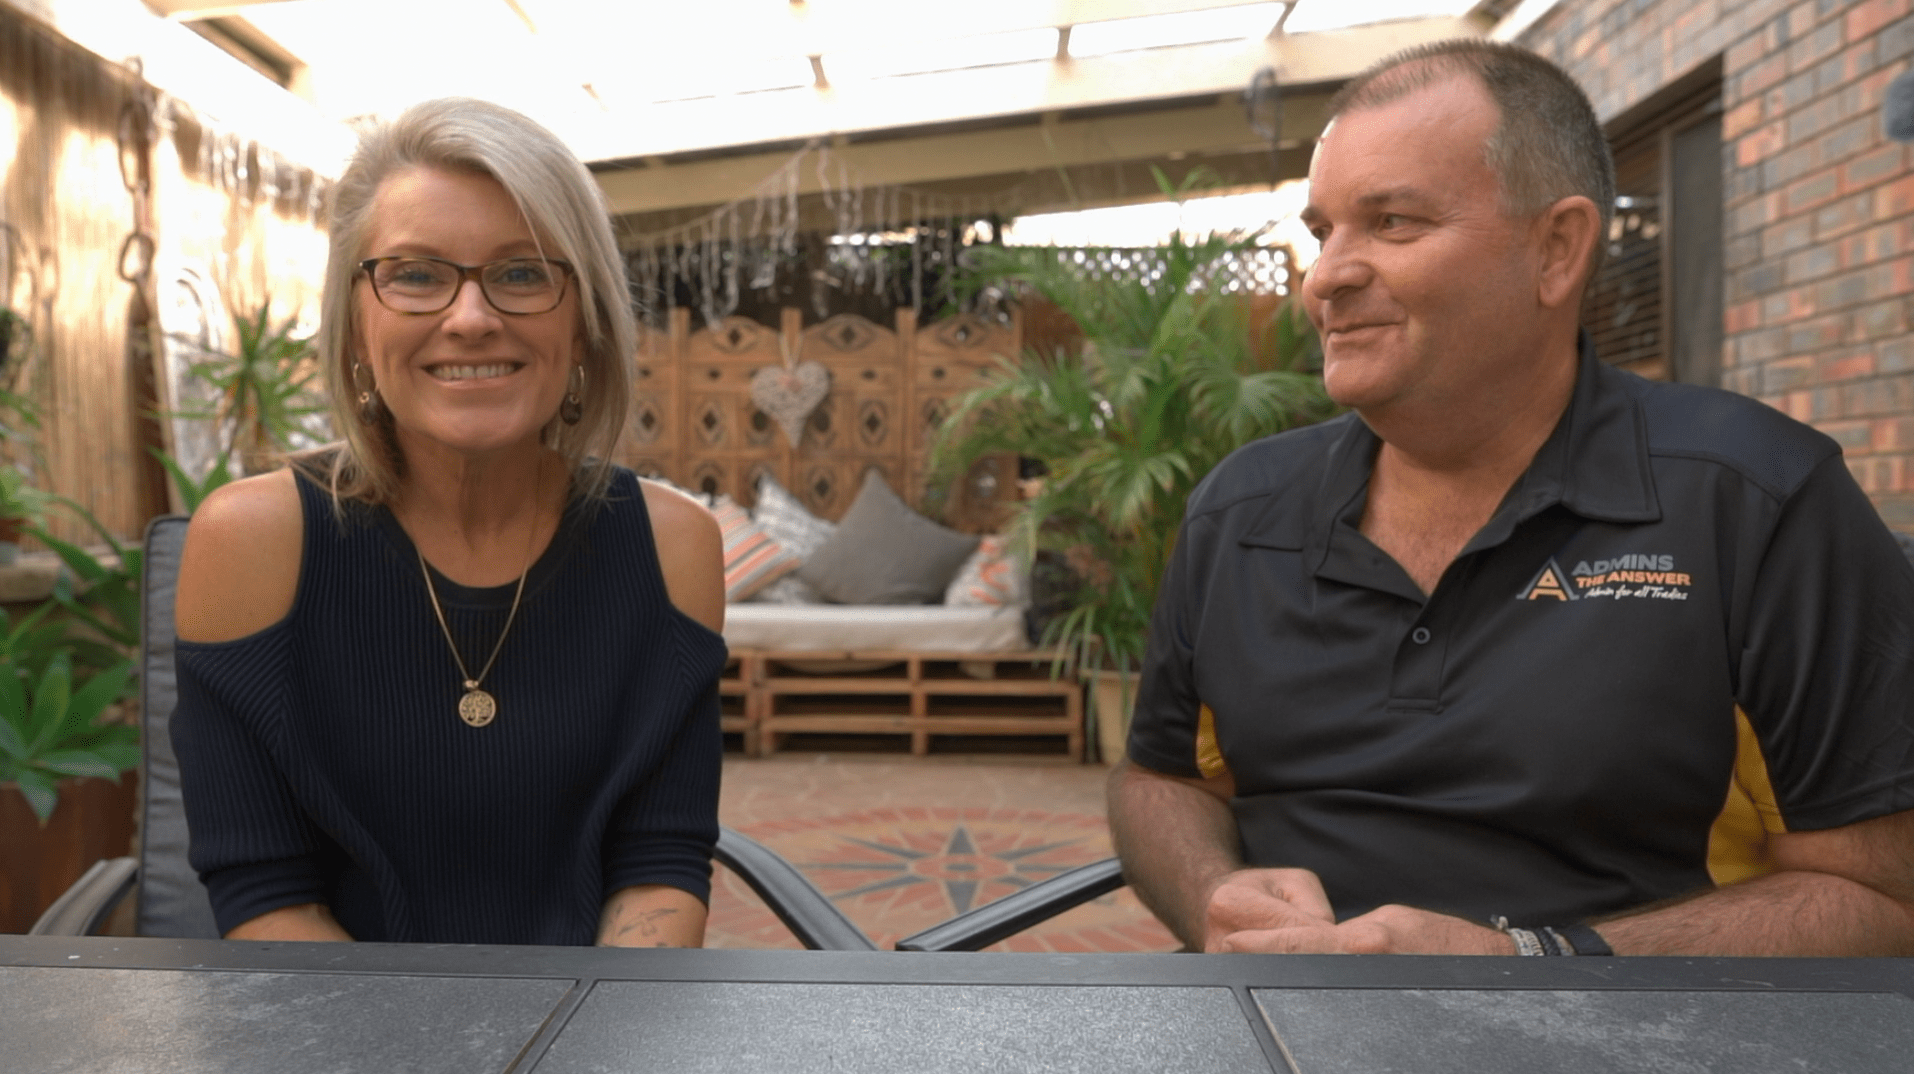 How Does Your Business Change Lives? with Greg Smith